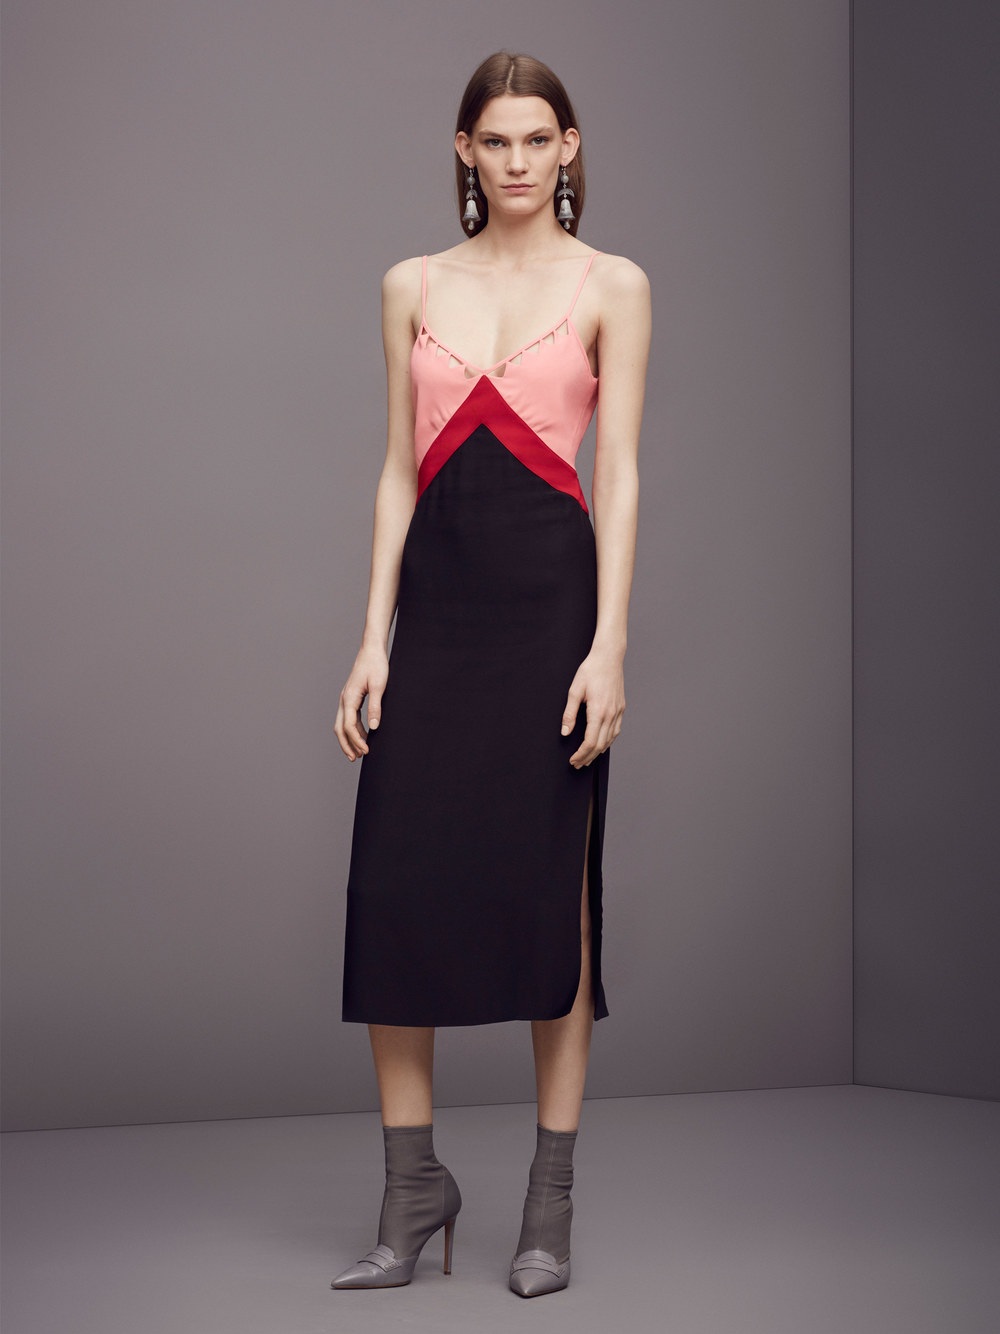 ROSE & IVY Journal PreFall 2016 Altuzarra